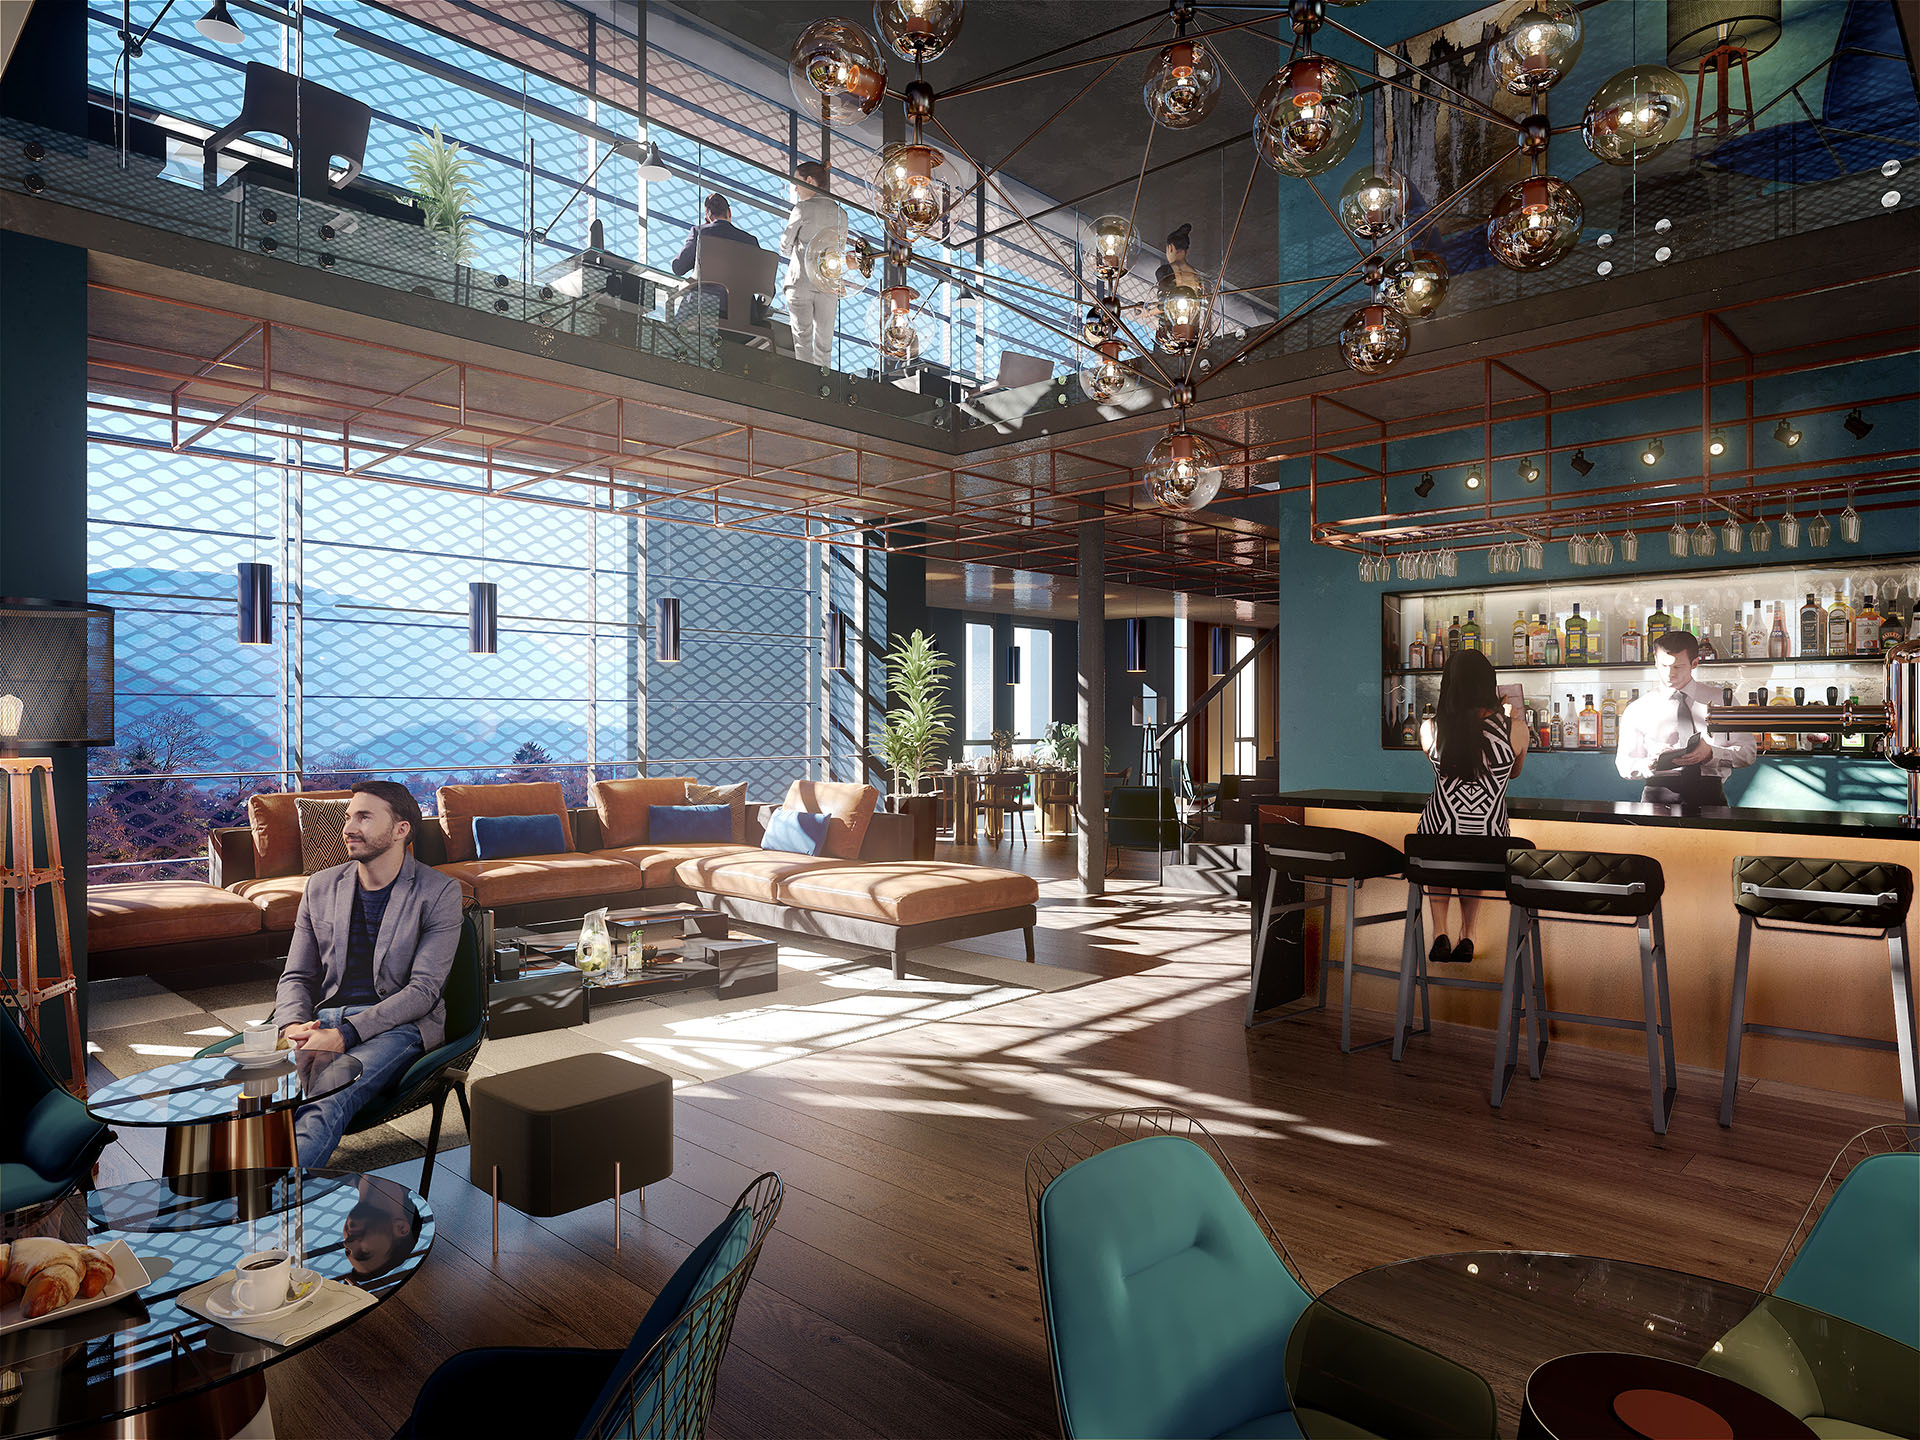 3D visualization of the interior of an industrial-style bar-restaurant